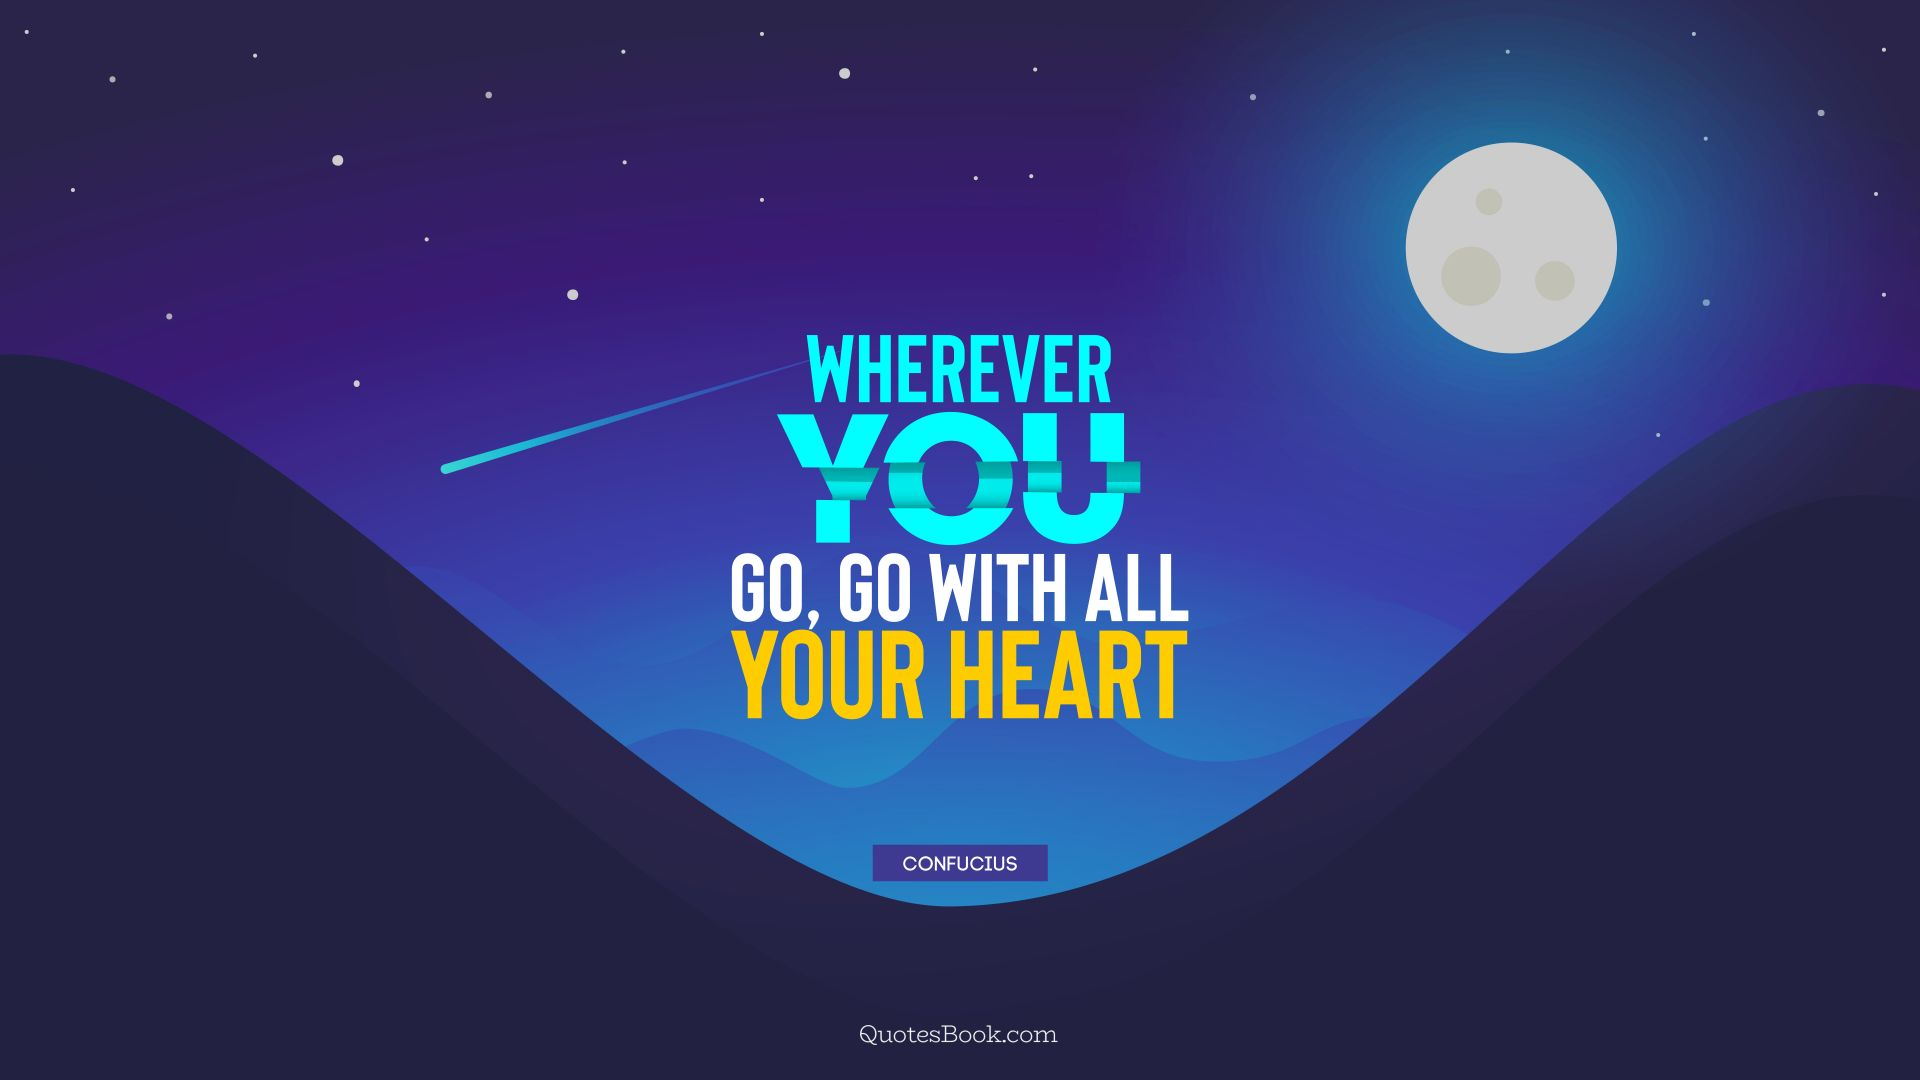 Wherever you go, go with all your heart  - Quote by